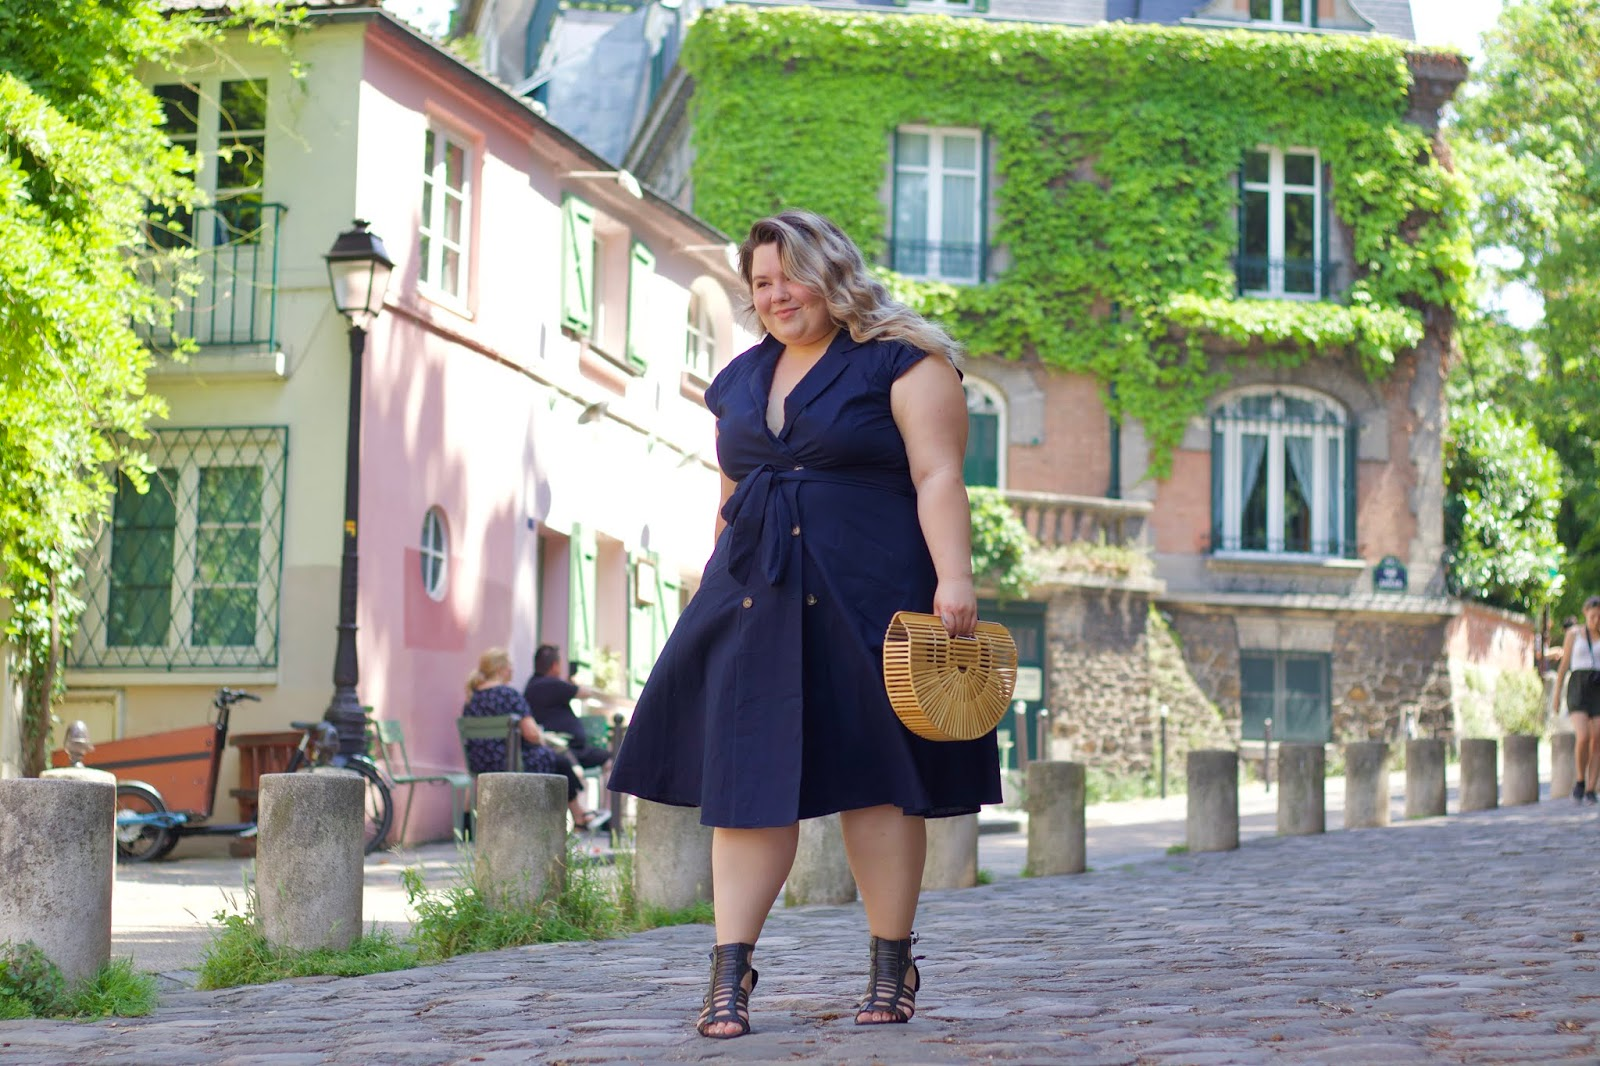 Chicago Plus Size Petite Fashion Blogger, influencer, YouTuber, and model Natalie Craig, of Natalie in the City, wears City Chic's fit and flare midi dress from Dia & Co while visiting this cute pink restaurant, La Maison Rose in Paris, France.